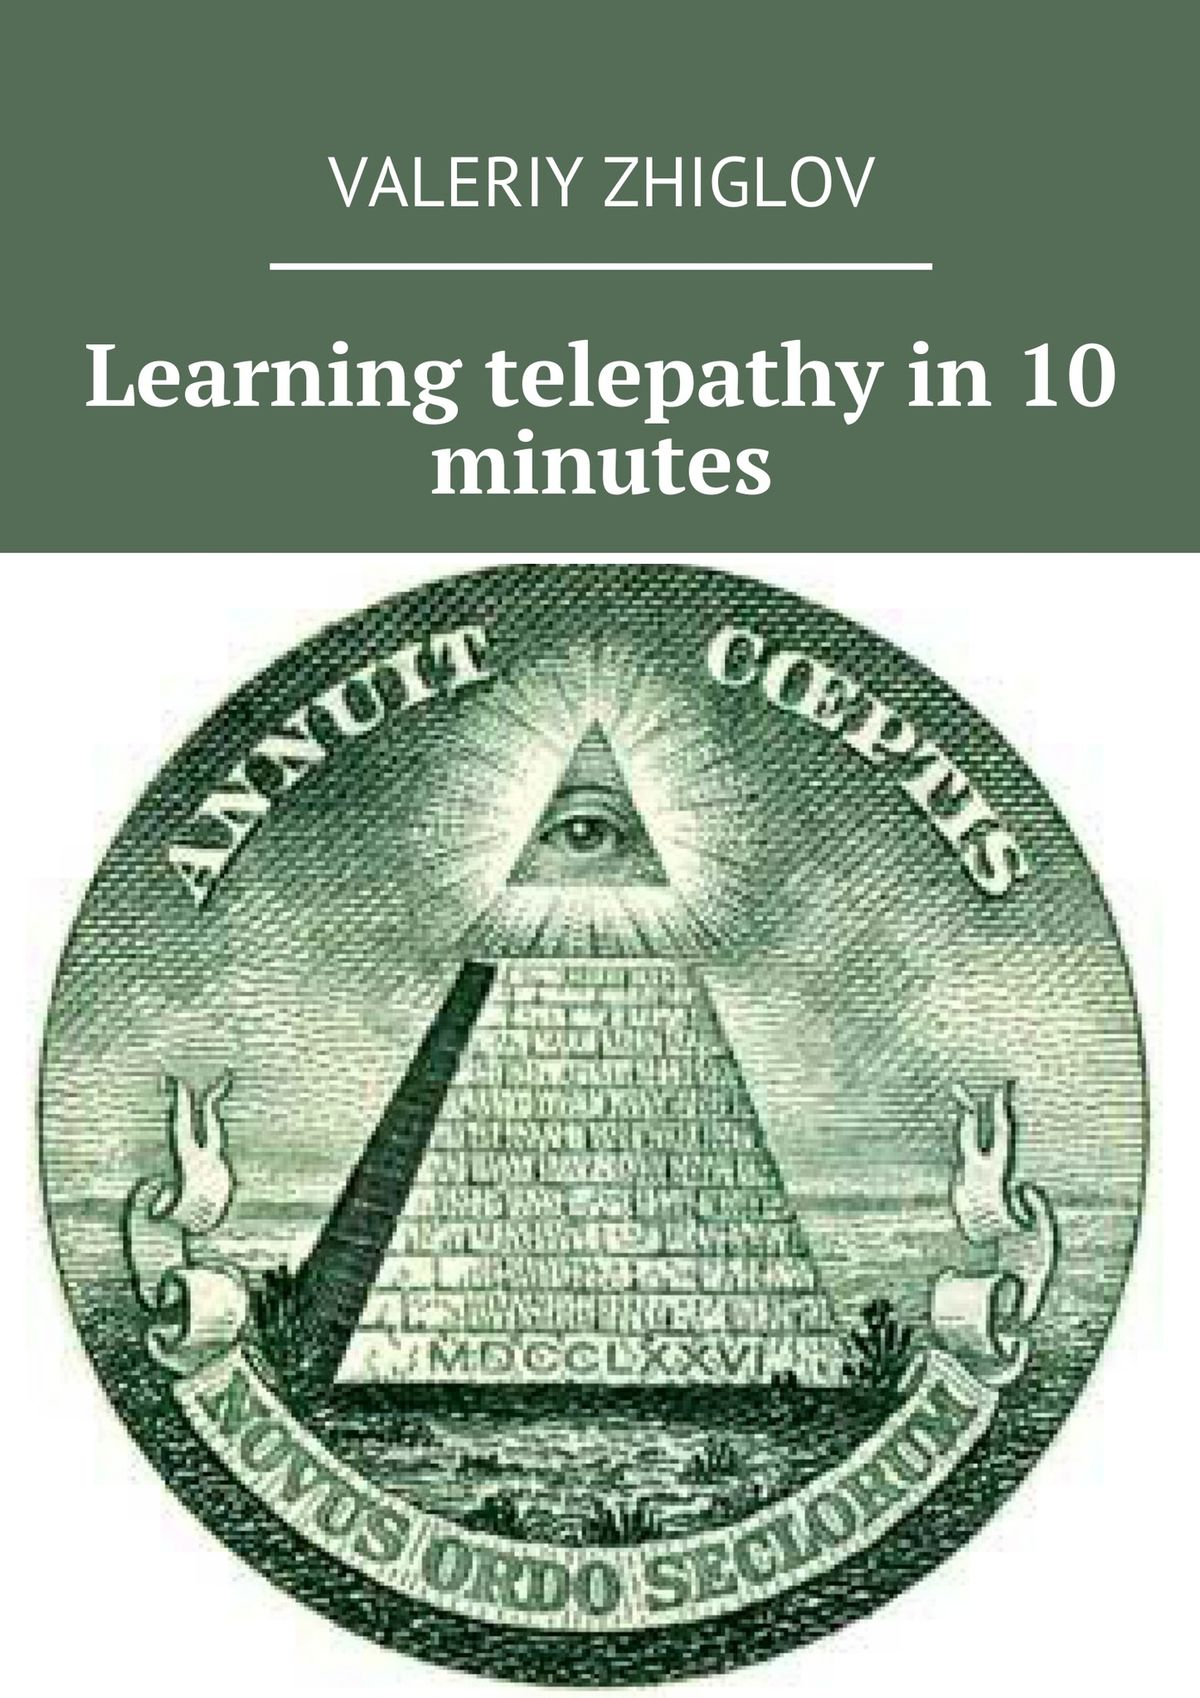 Valeriy Zhiglov Learning telepathy in 10 minutes